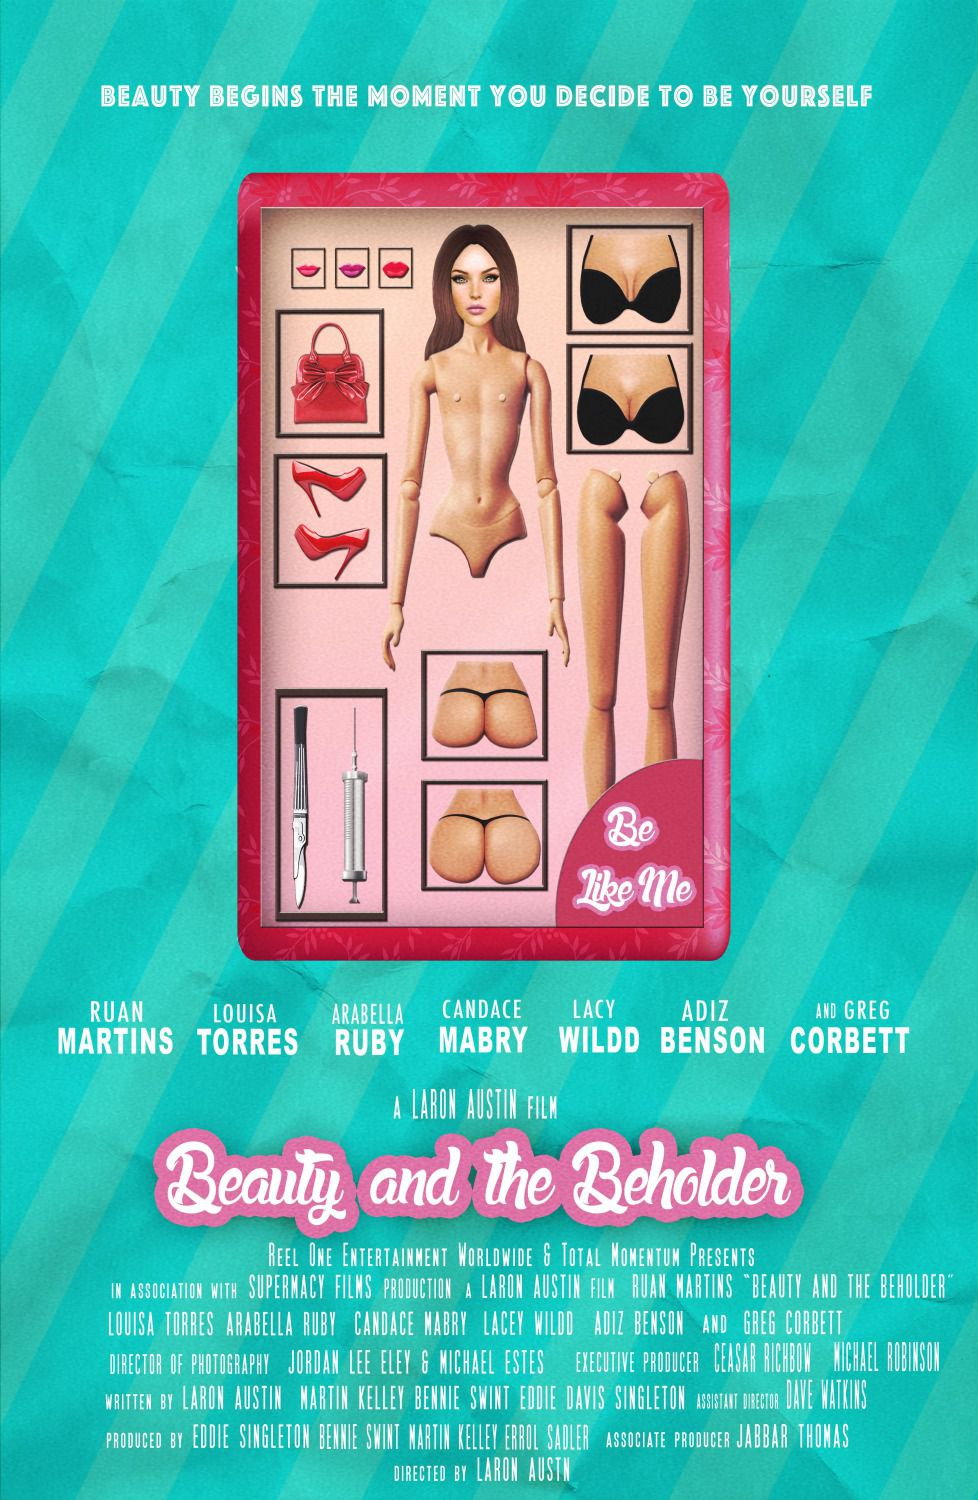 Beauty and the Beholder - Cast: Ruan Martins, Louisa Torres, Arabella Ruby, Candace Mabry, Lacy Wildd, Adiz Benson, Greg Corbett - film poster